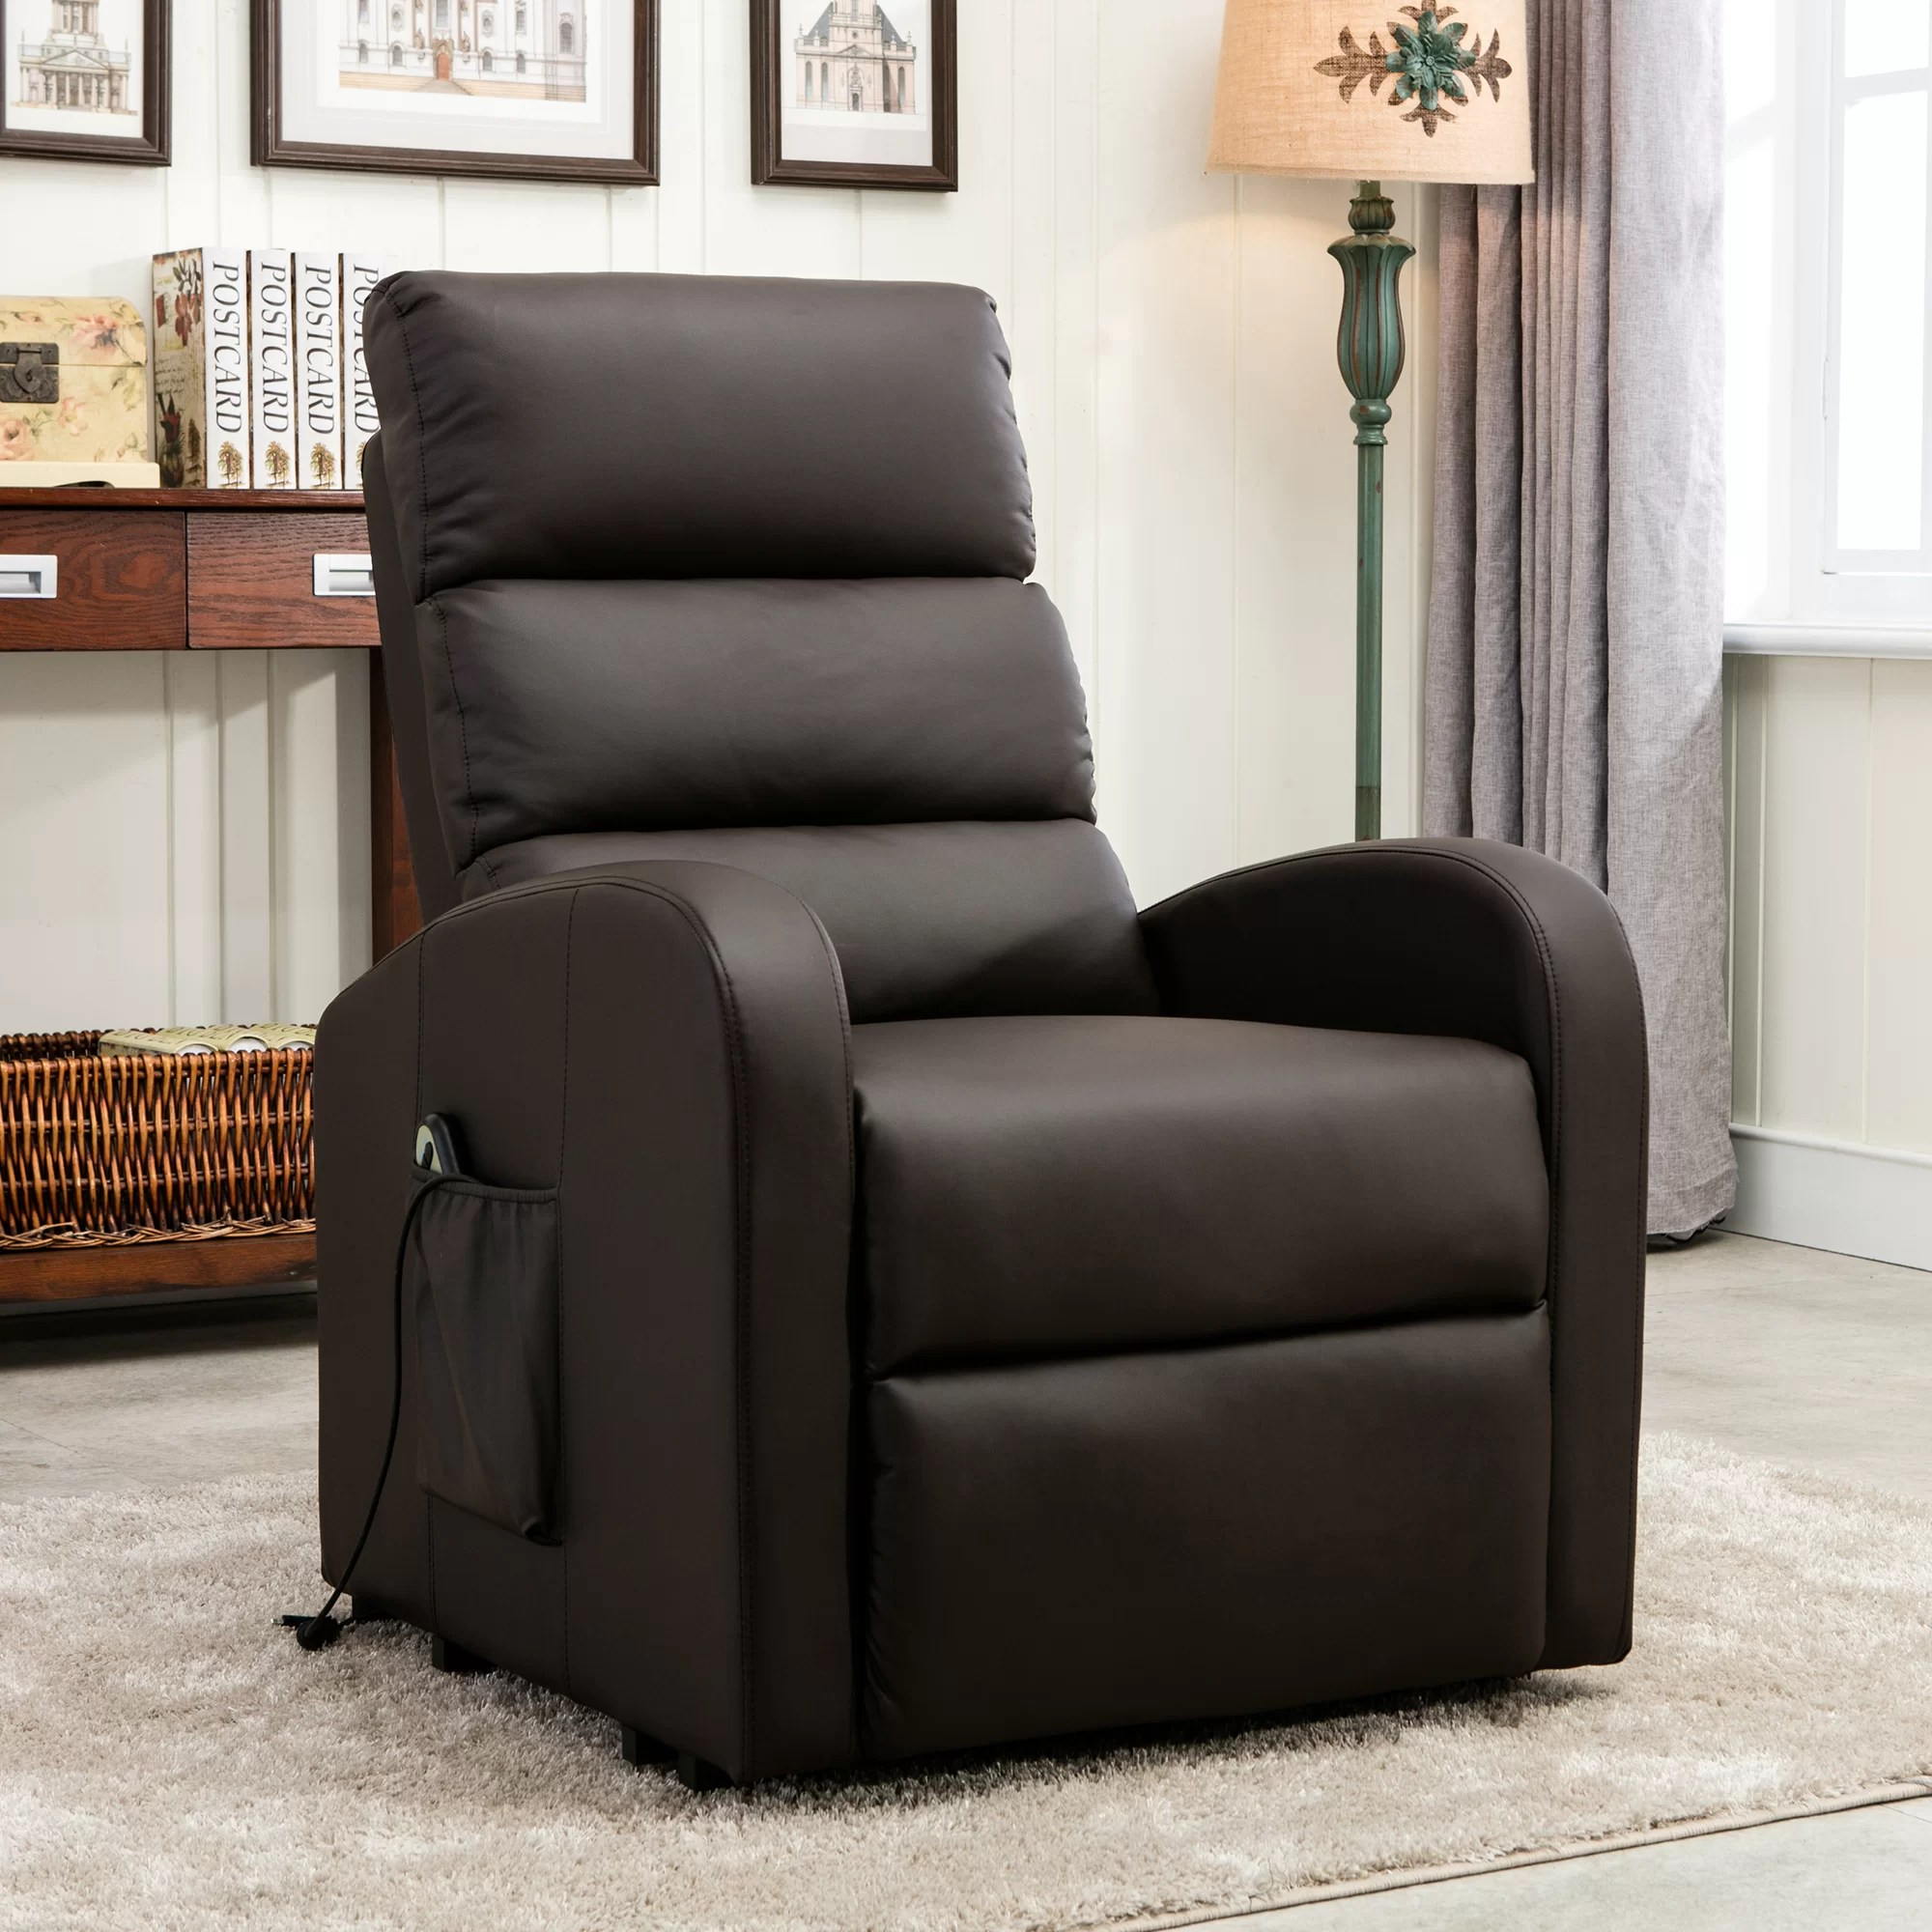 Infinite Position Lift Chair Classic Plush Bonded Leather Power Large Infinite Position